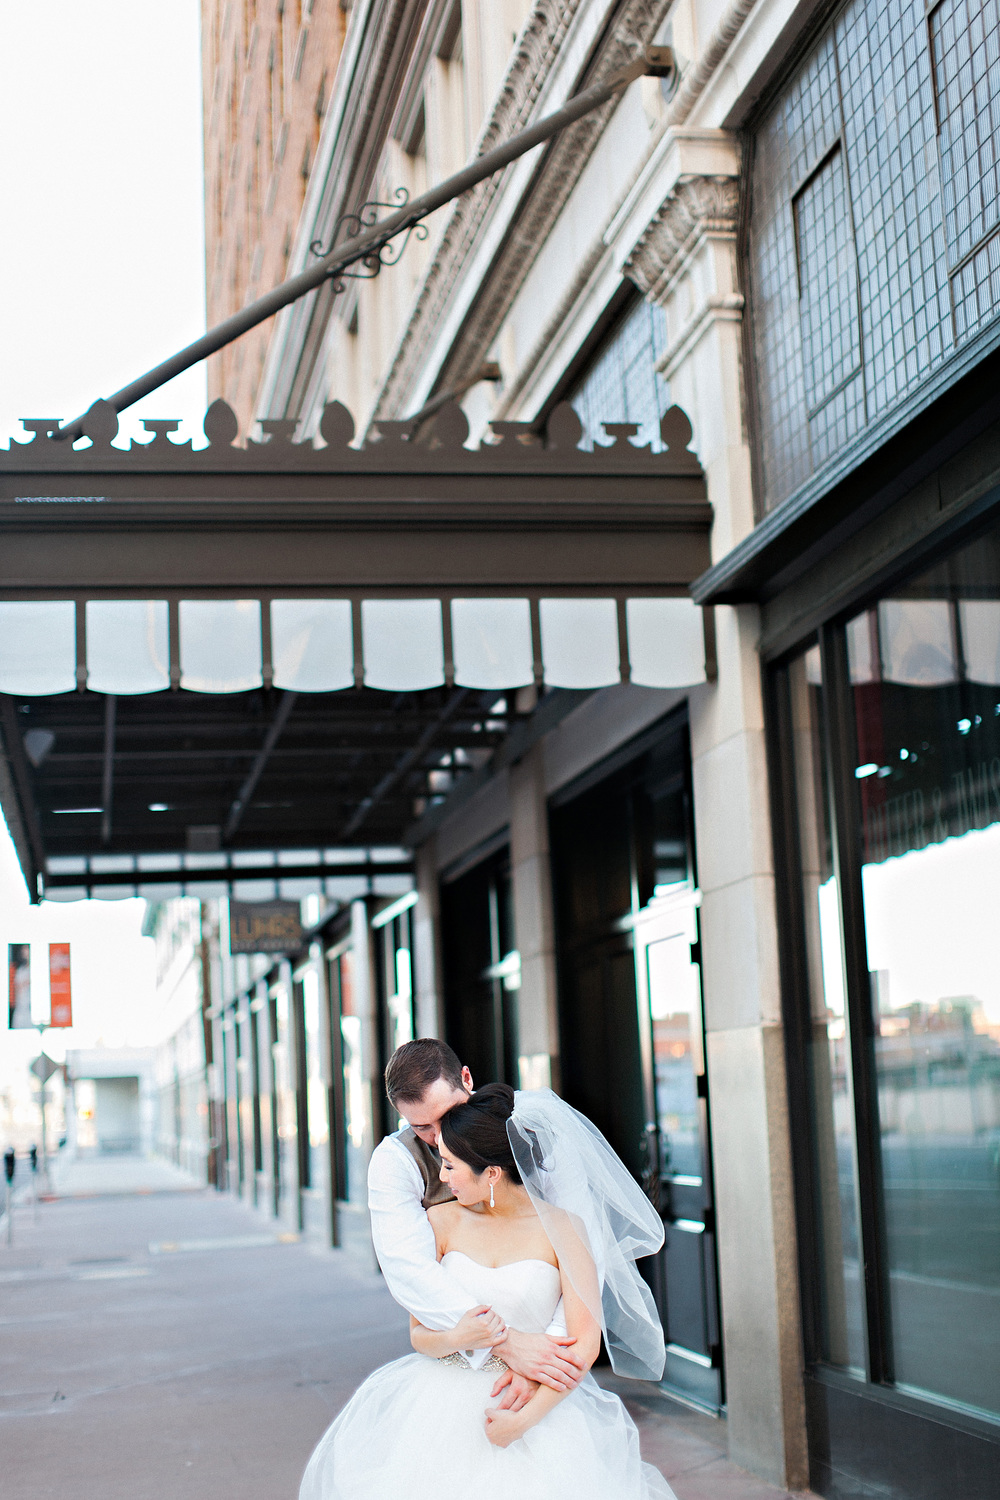 hesketh_0567.jpg